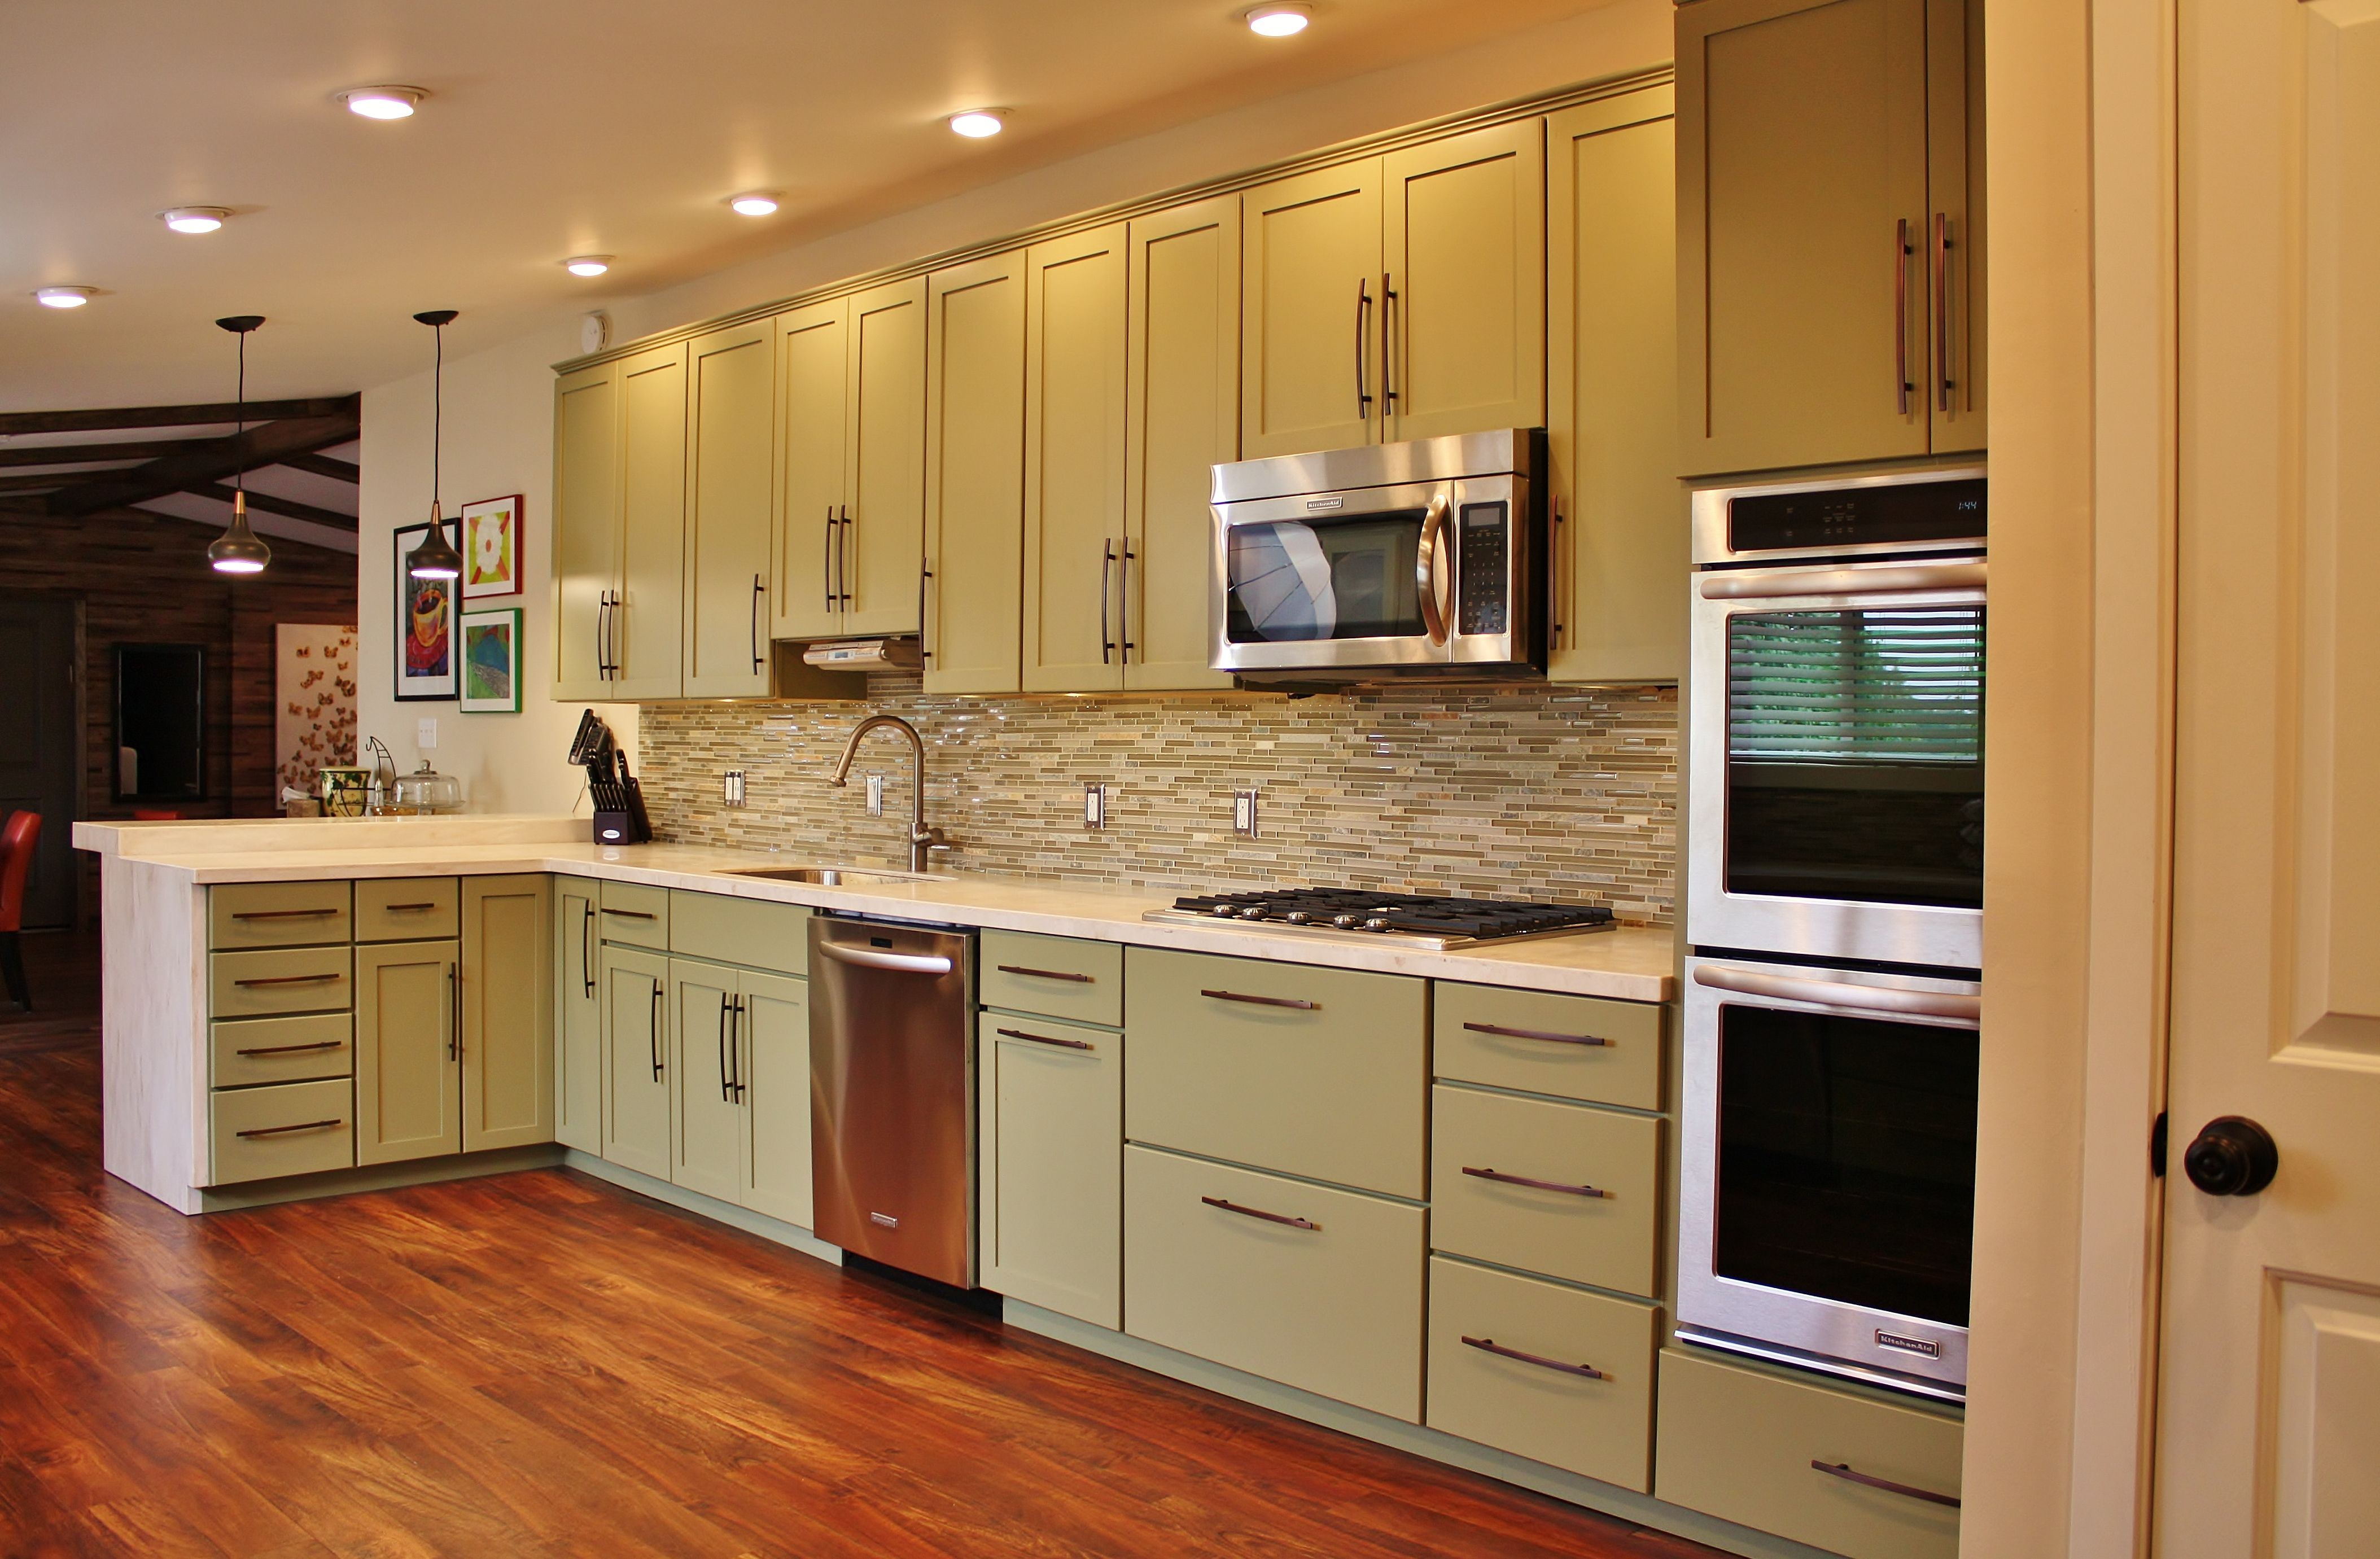 Holiday Kitchens Seattle Shaker Cabinets Corian Solid Surface Countertops Kosher Kitchen Glas Waterfall Countertop Holiday Kitchen Solid Surface Countertops